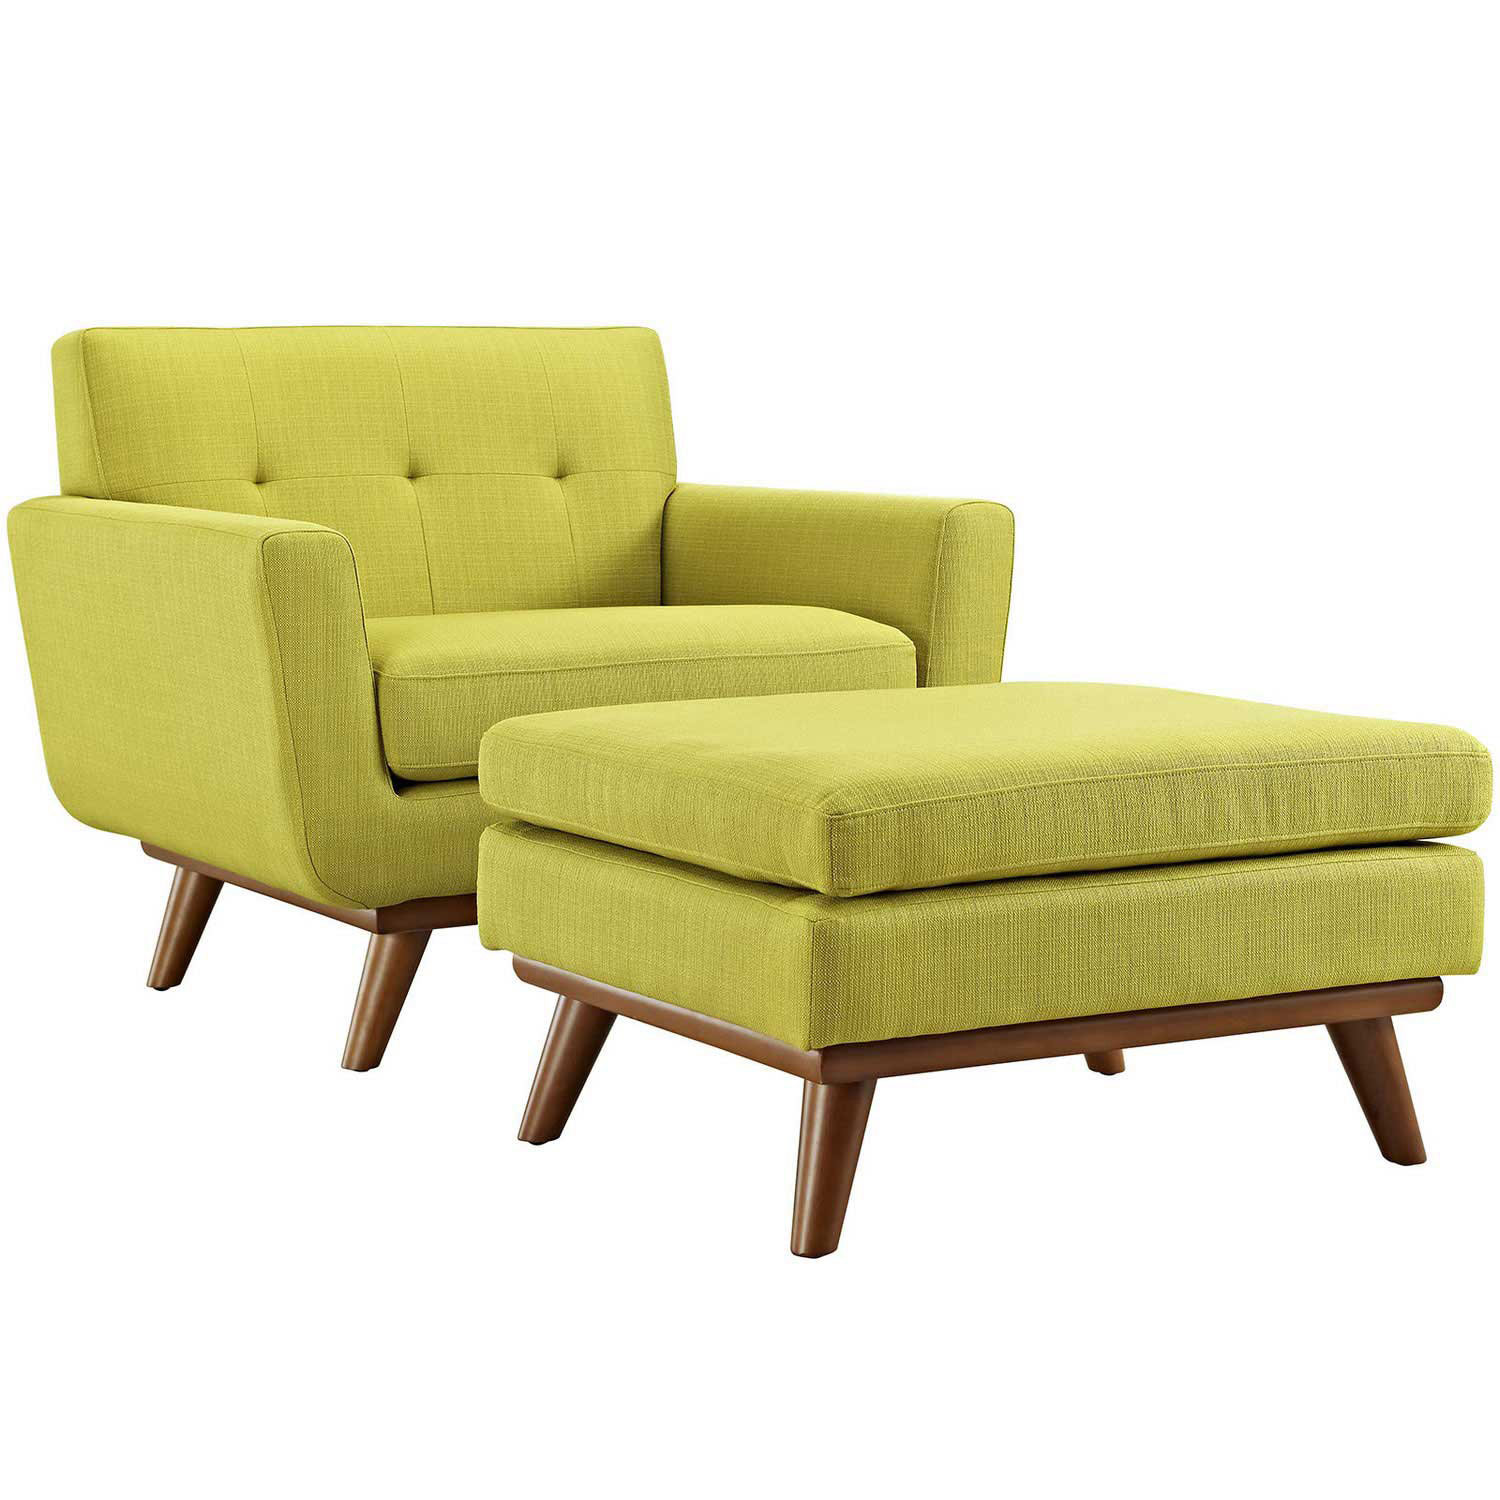 Modway Engage 2 Piece Chair and Ottoman - Wheatgrass